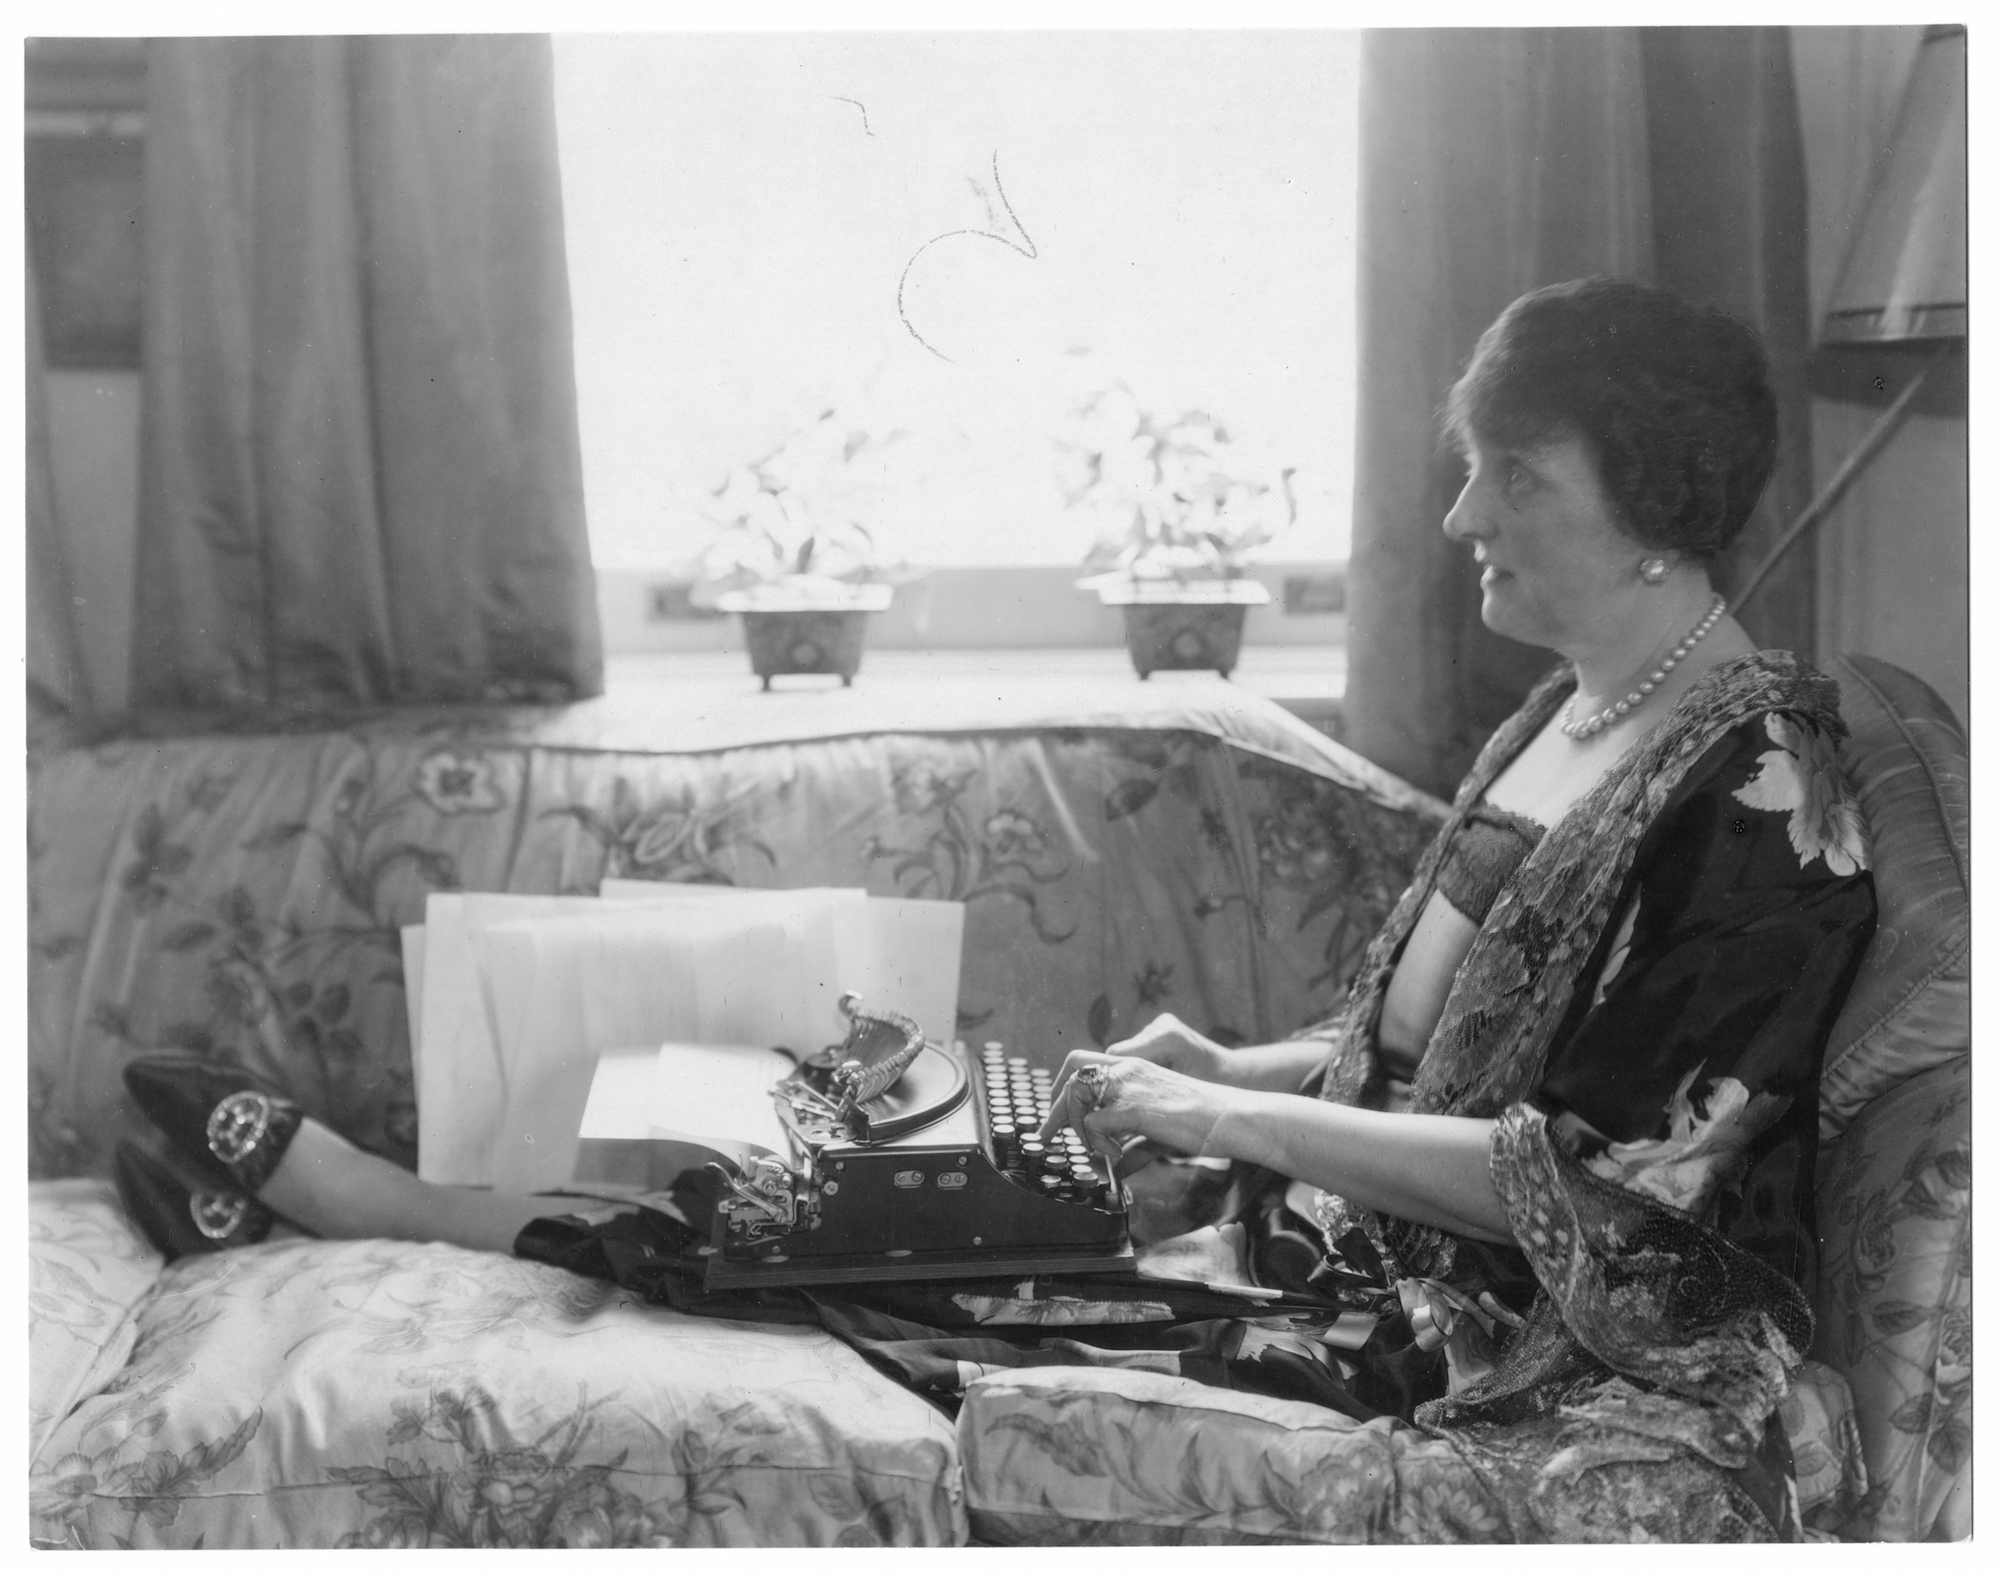 Etiquette author Emily Post, in pearls and flowing robe, sitting lengthwise on couch with legs stretched out, typewriter in her lap, 1927.